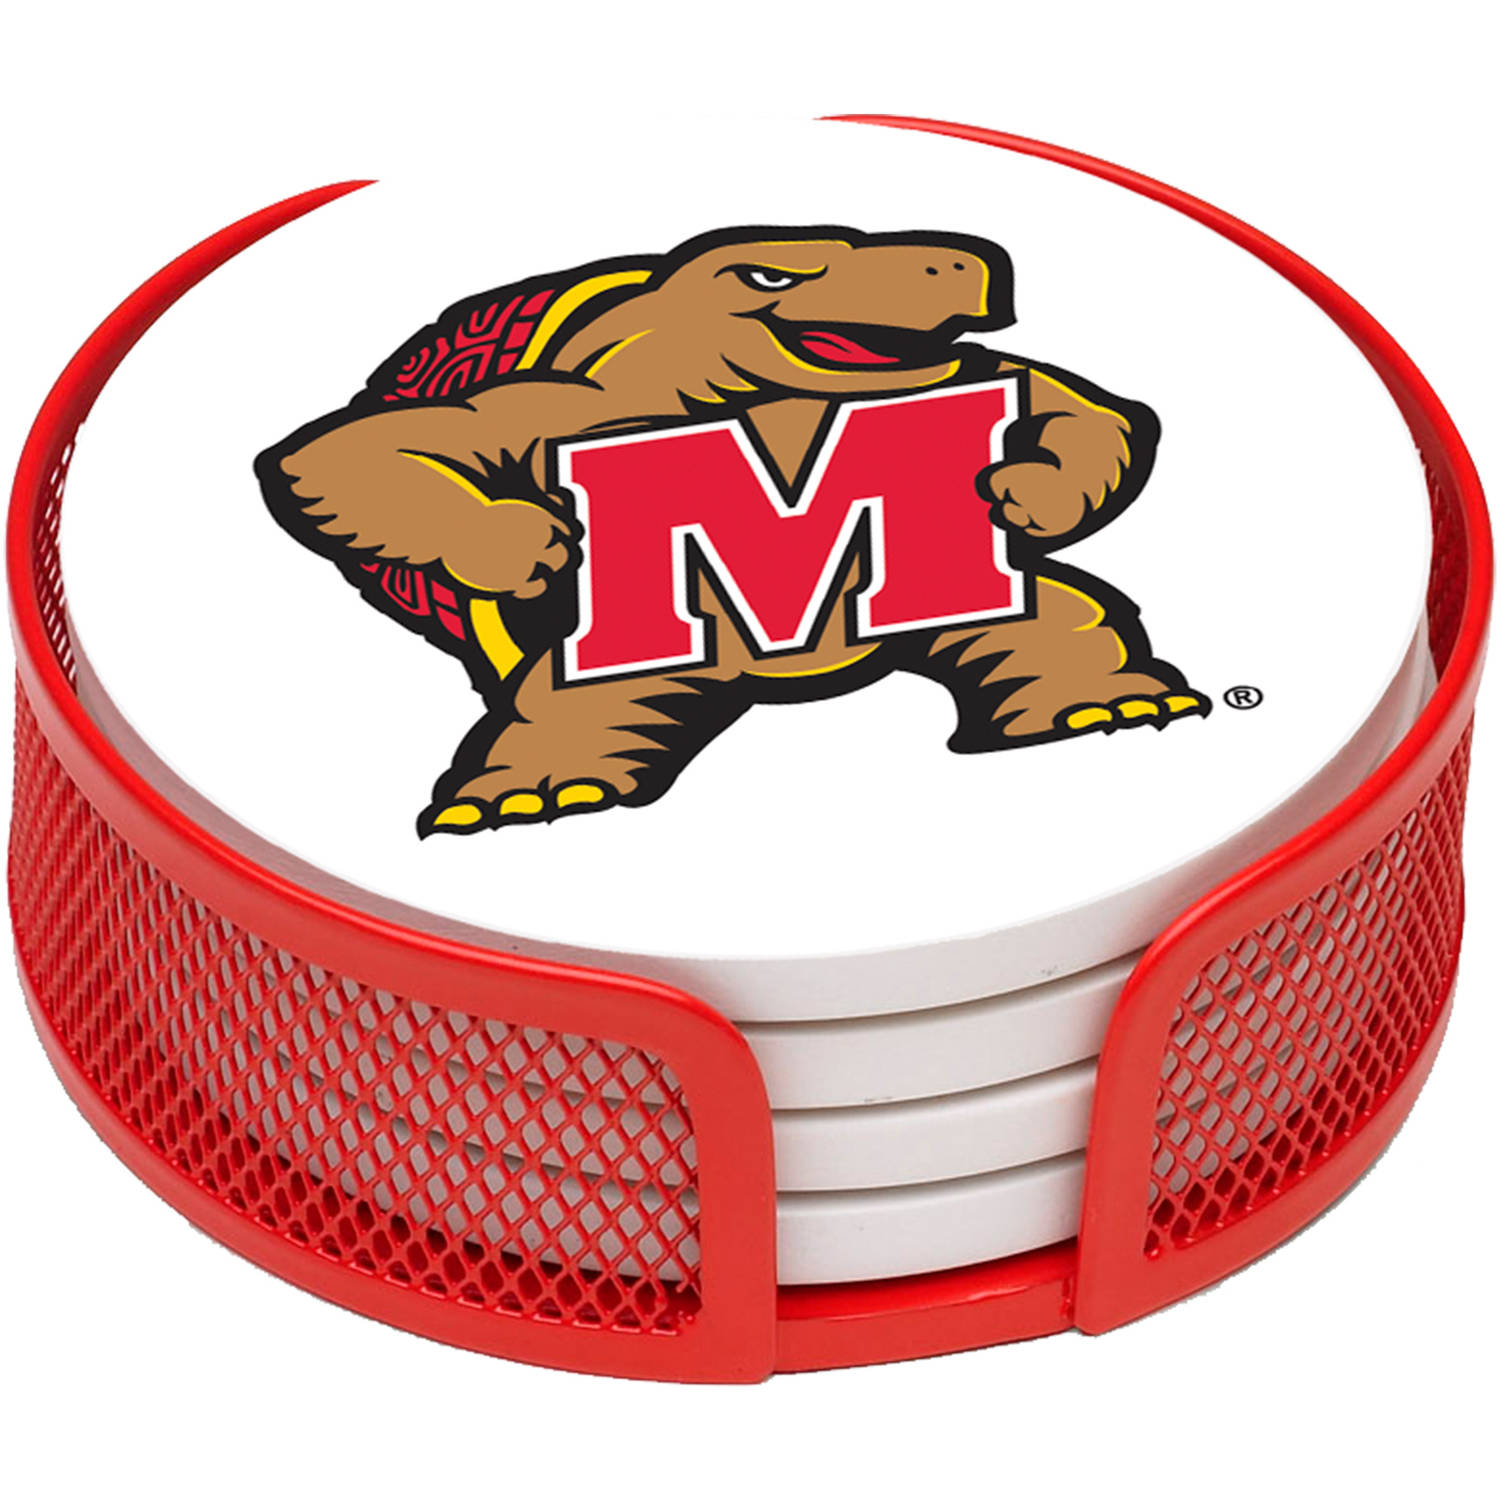 Stoneware Drink Coaster Set with Holder Included,, University of Maryland